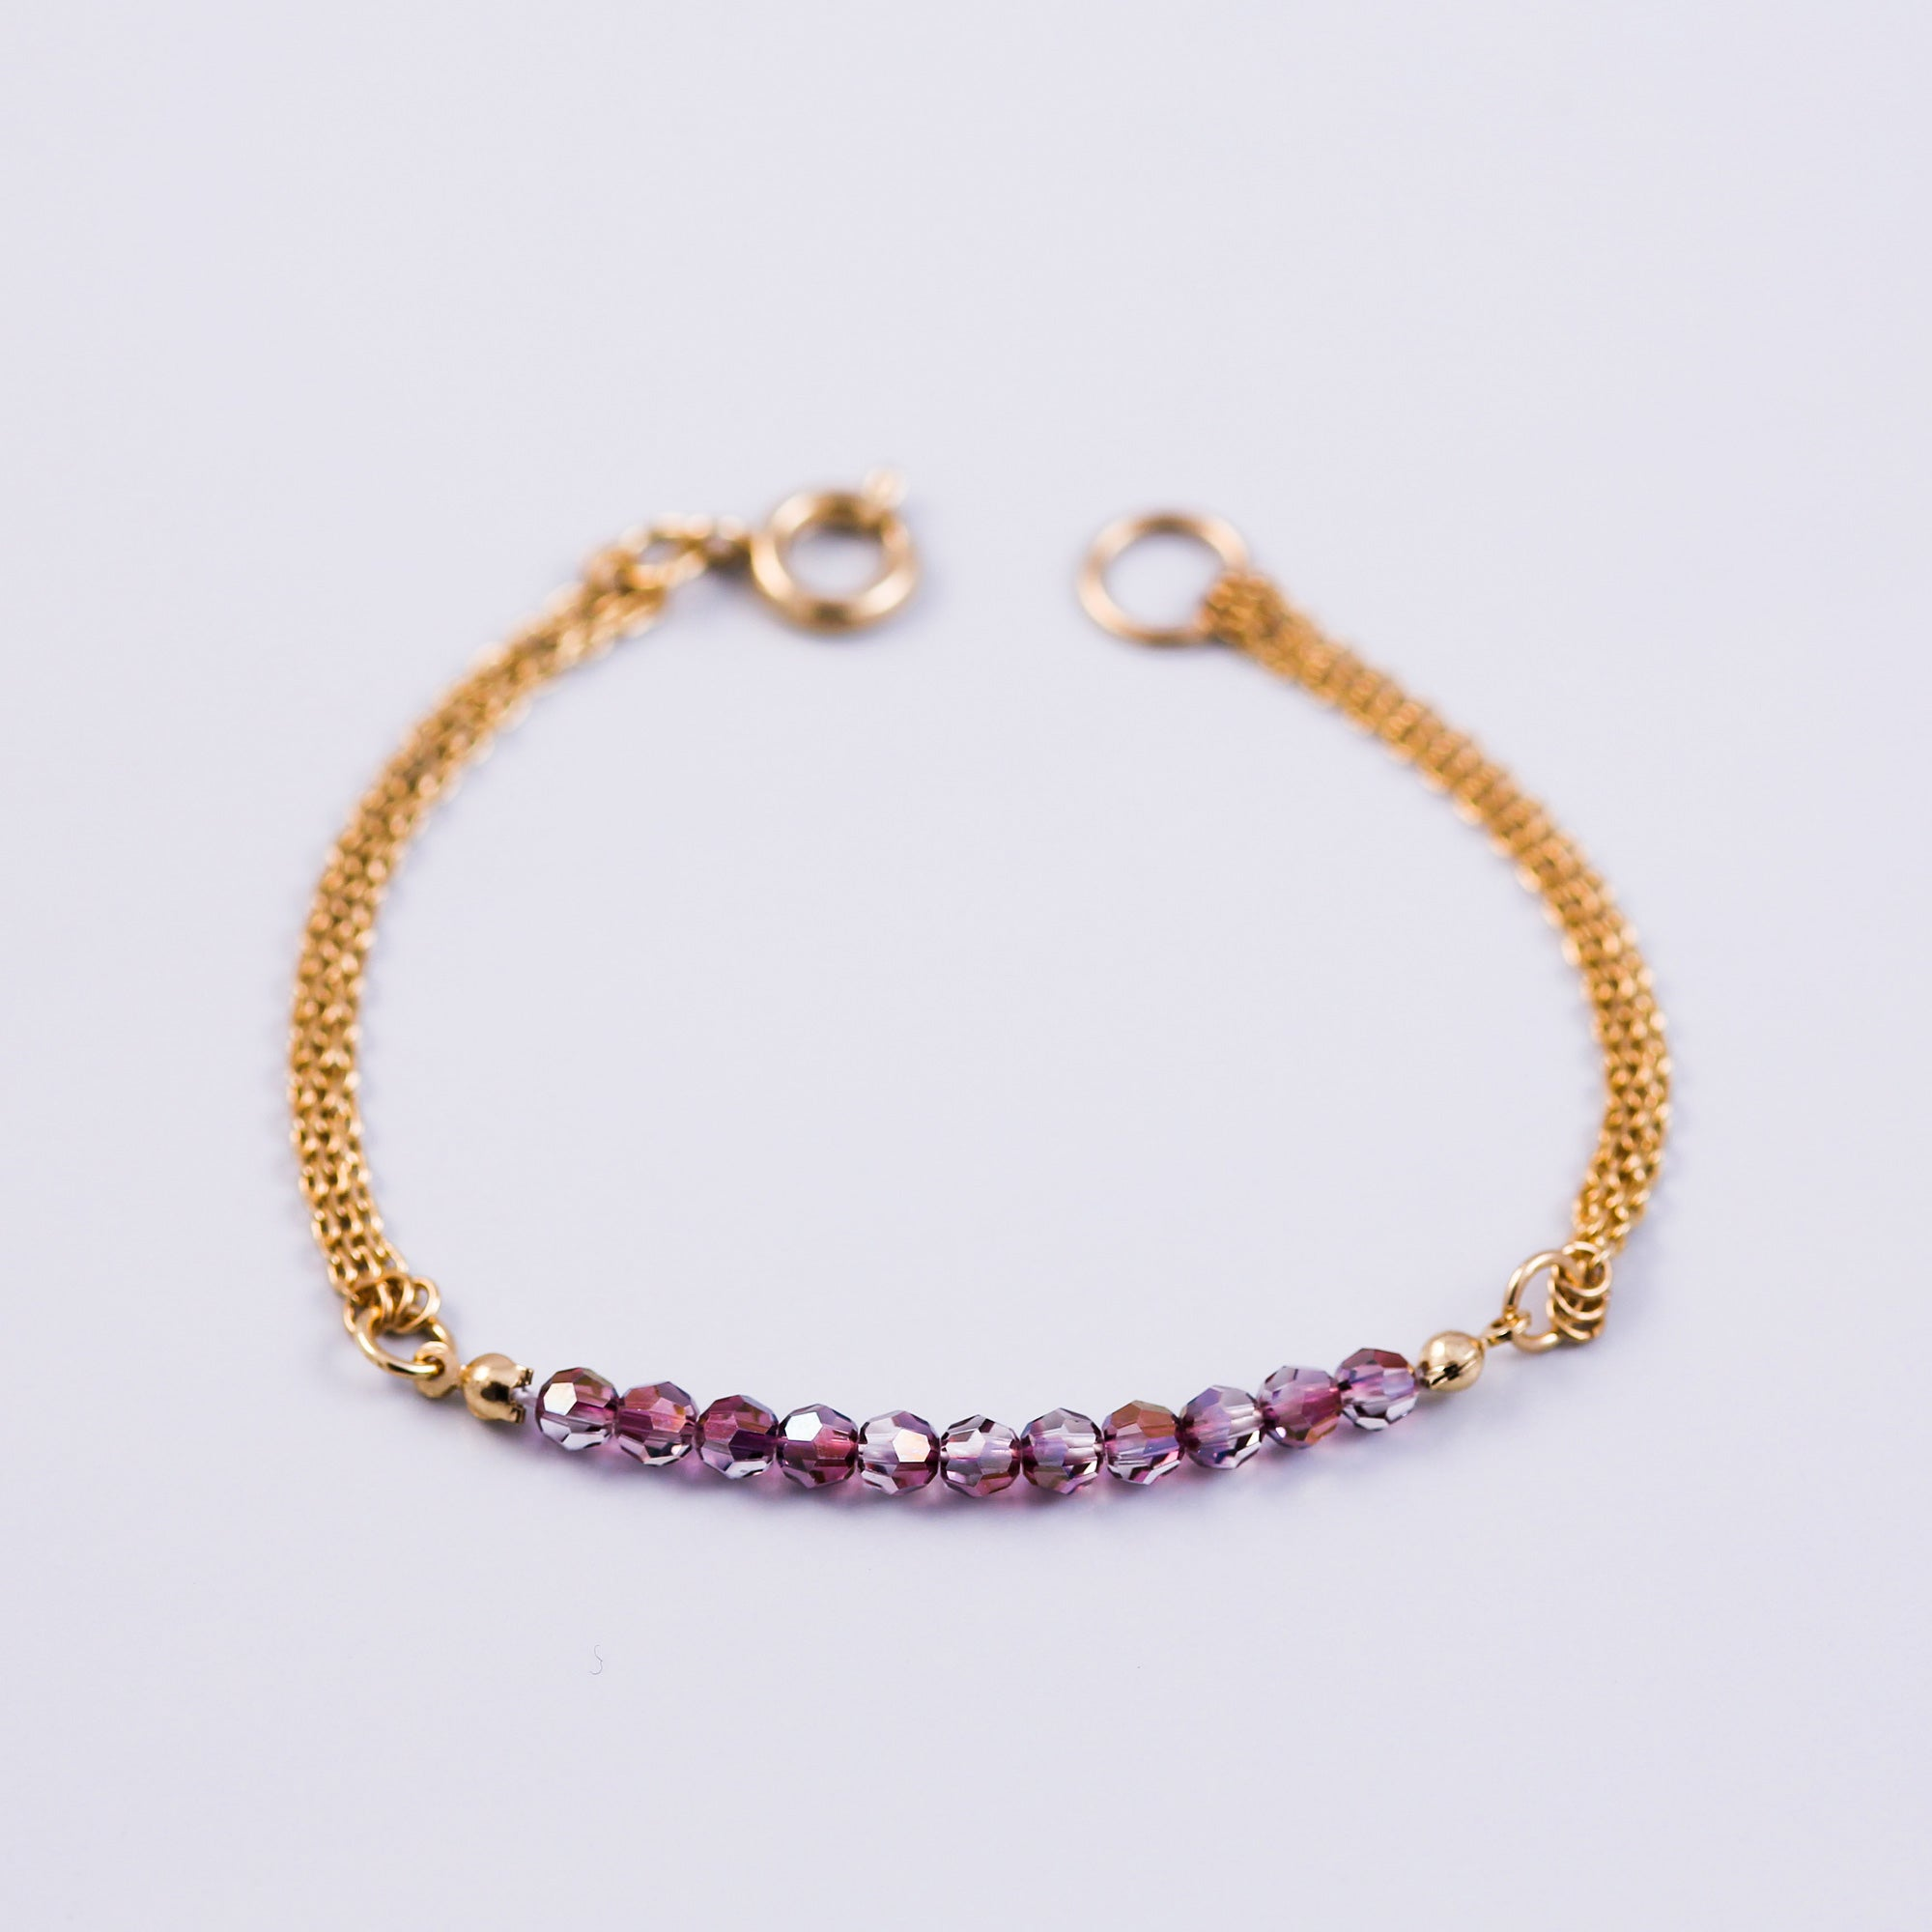 Crystal Bead Bracelet Gold & Crystal Lilac Shadow